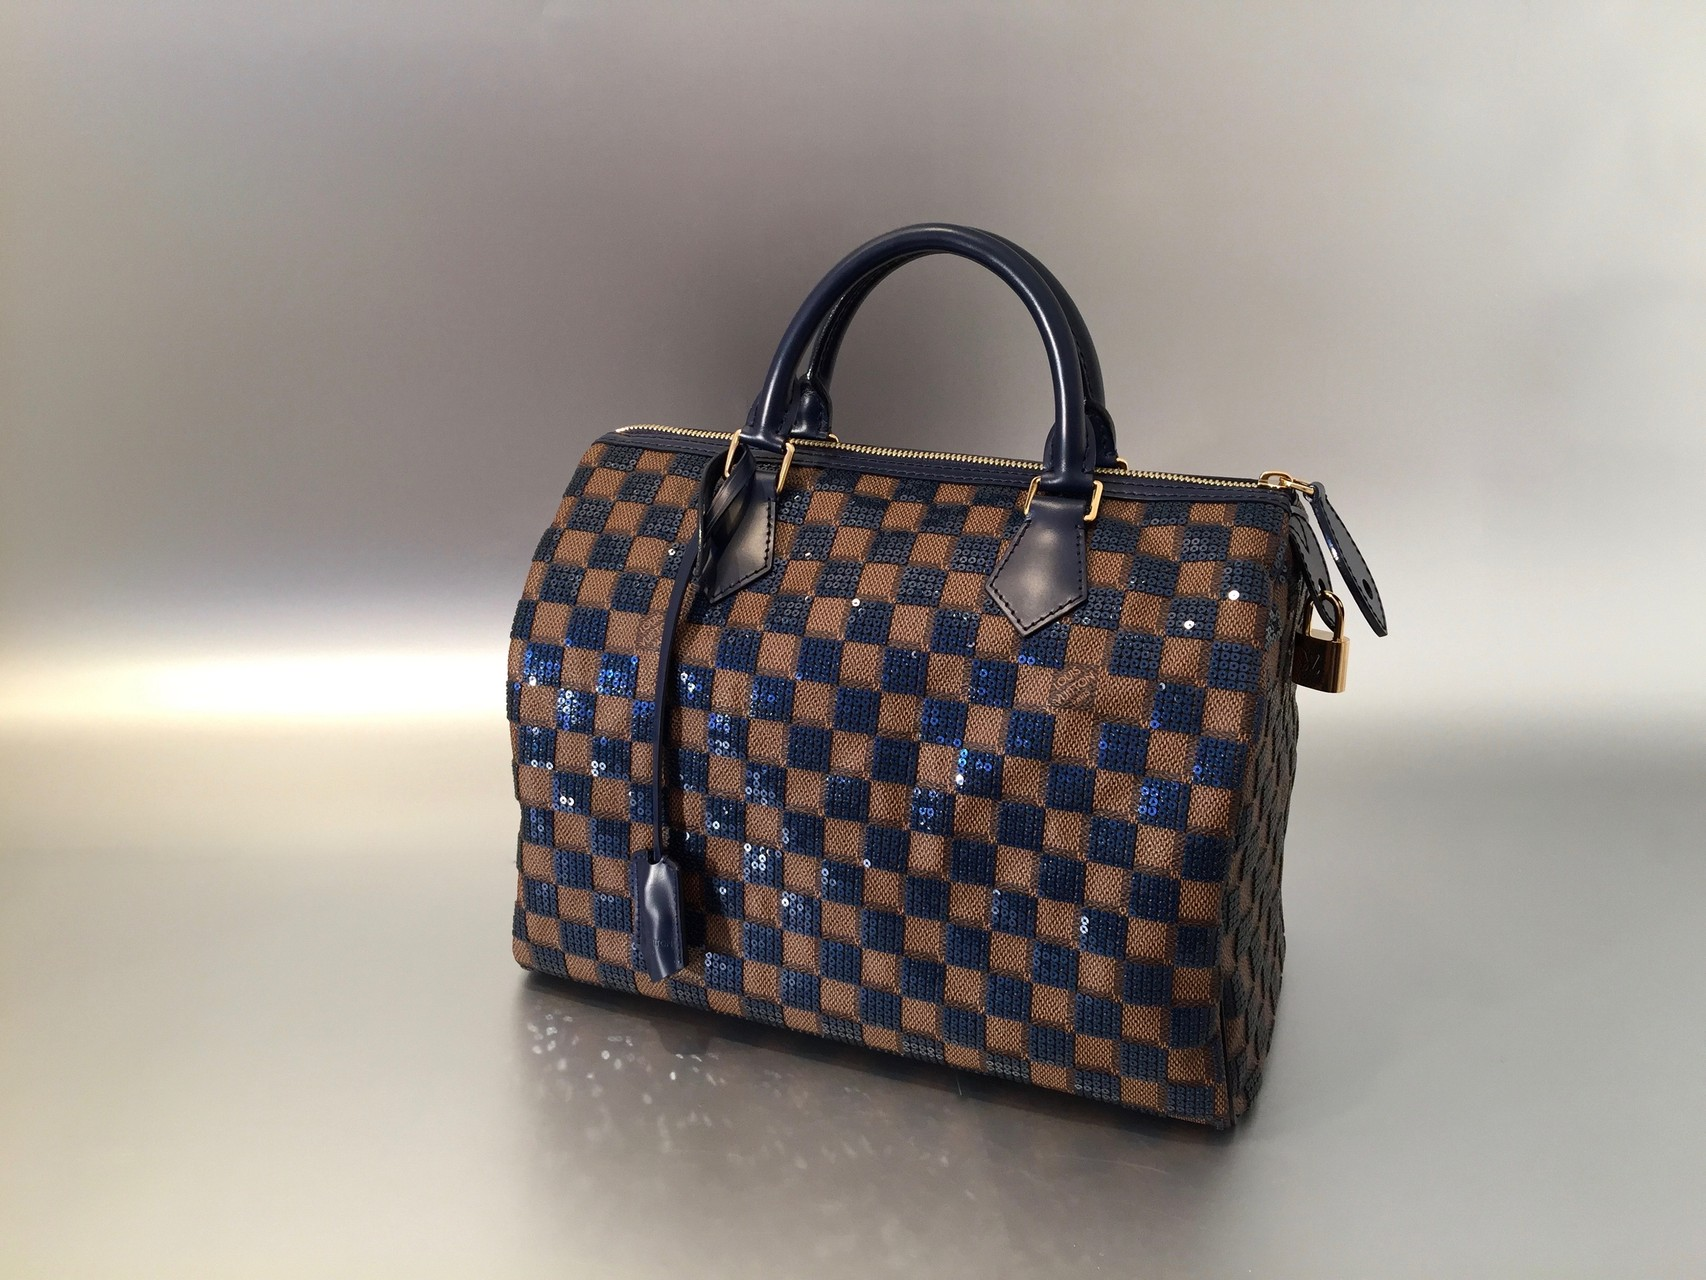 louis vuitton damier paillettes speedy in blau ankauf verkauf second hand designertaschen. Black Bedroom Furniture Sets. Home Design Ideas